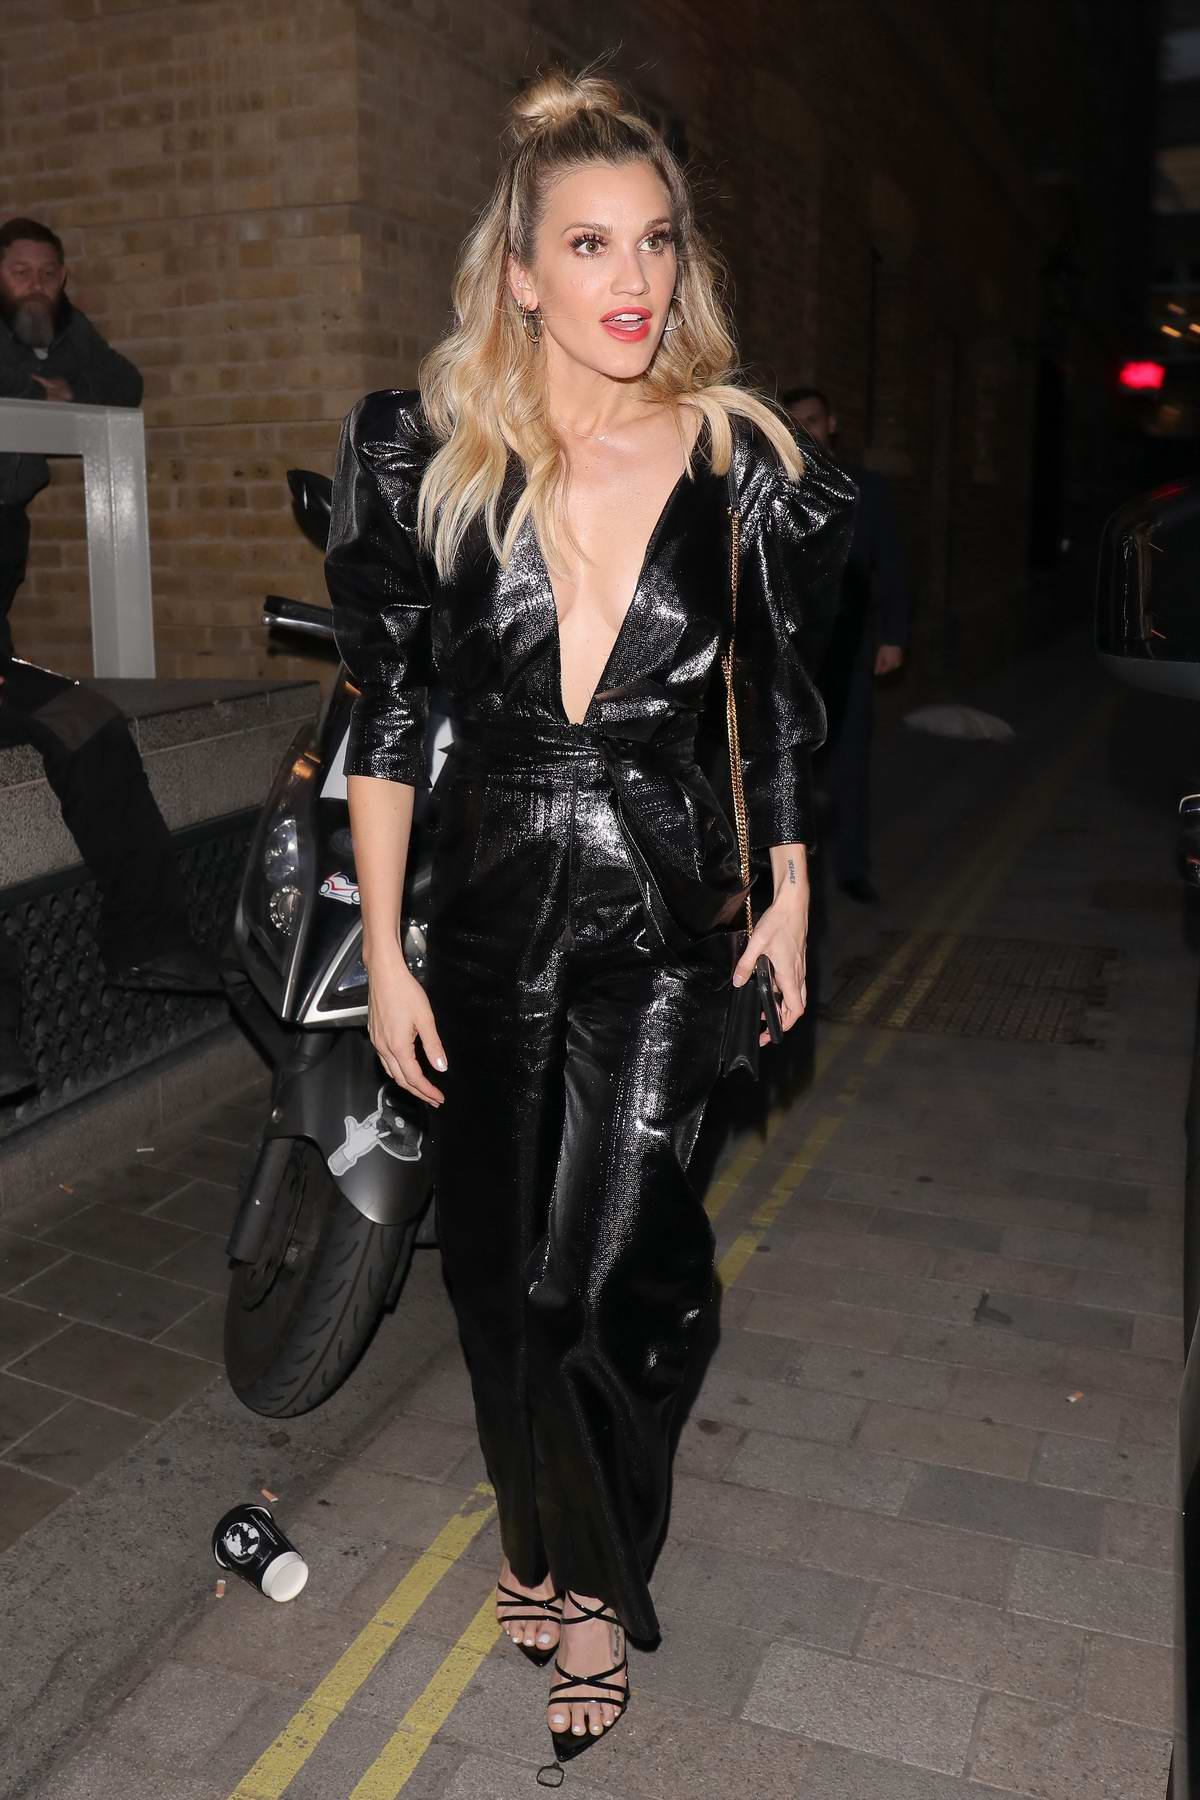 Ashley Roberts attends Jourdan Dunn x Maybelline party at H&M Covent Garden in London, UK